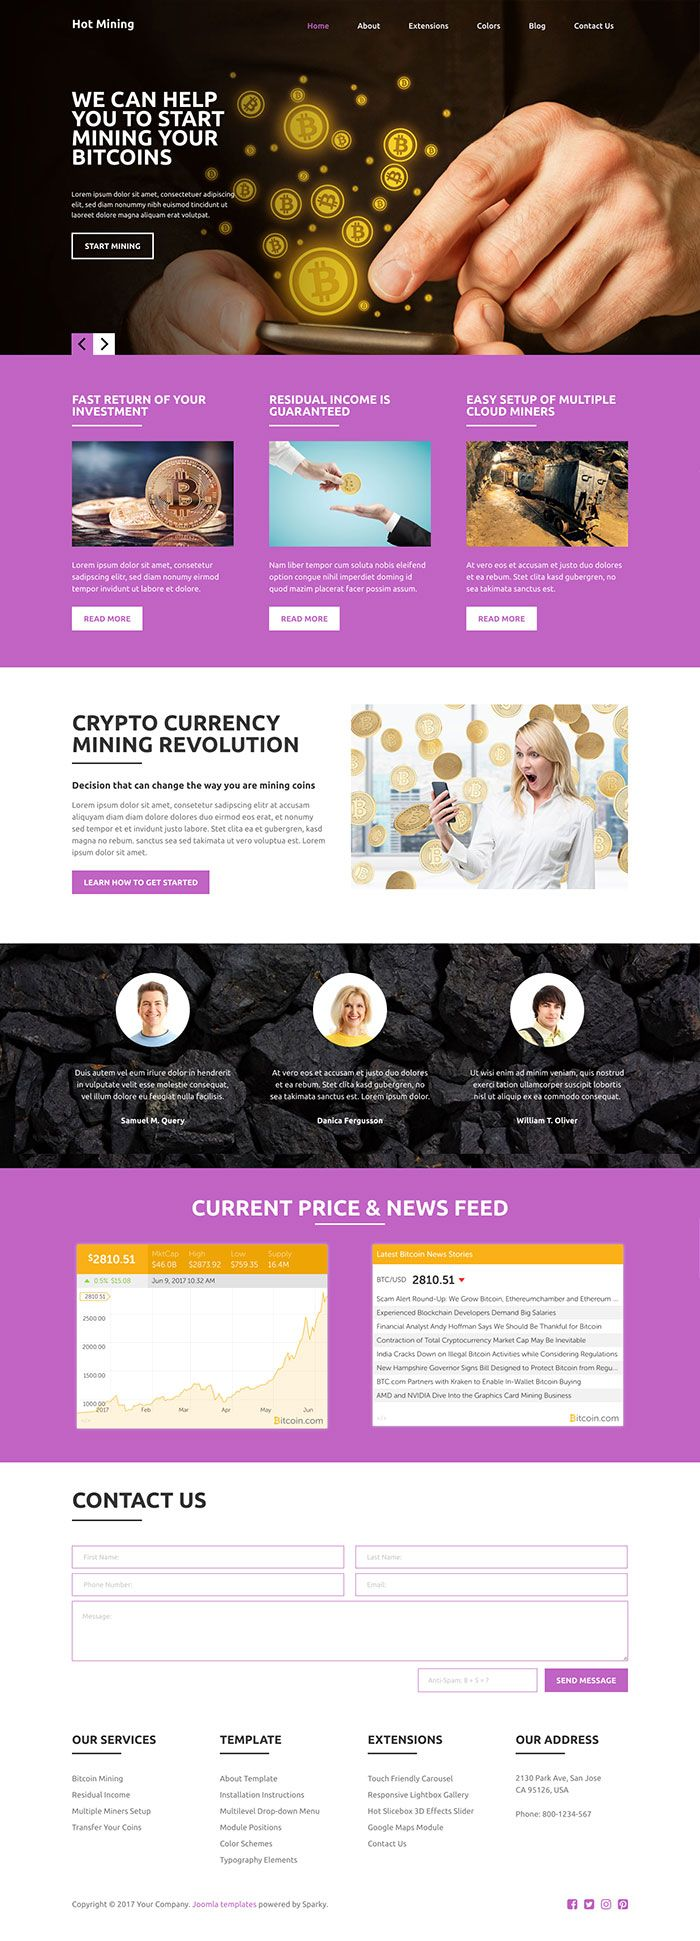 Hot Mining - Joomla Template Screenshot 4